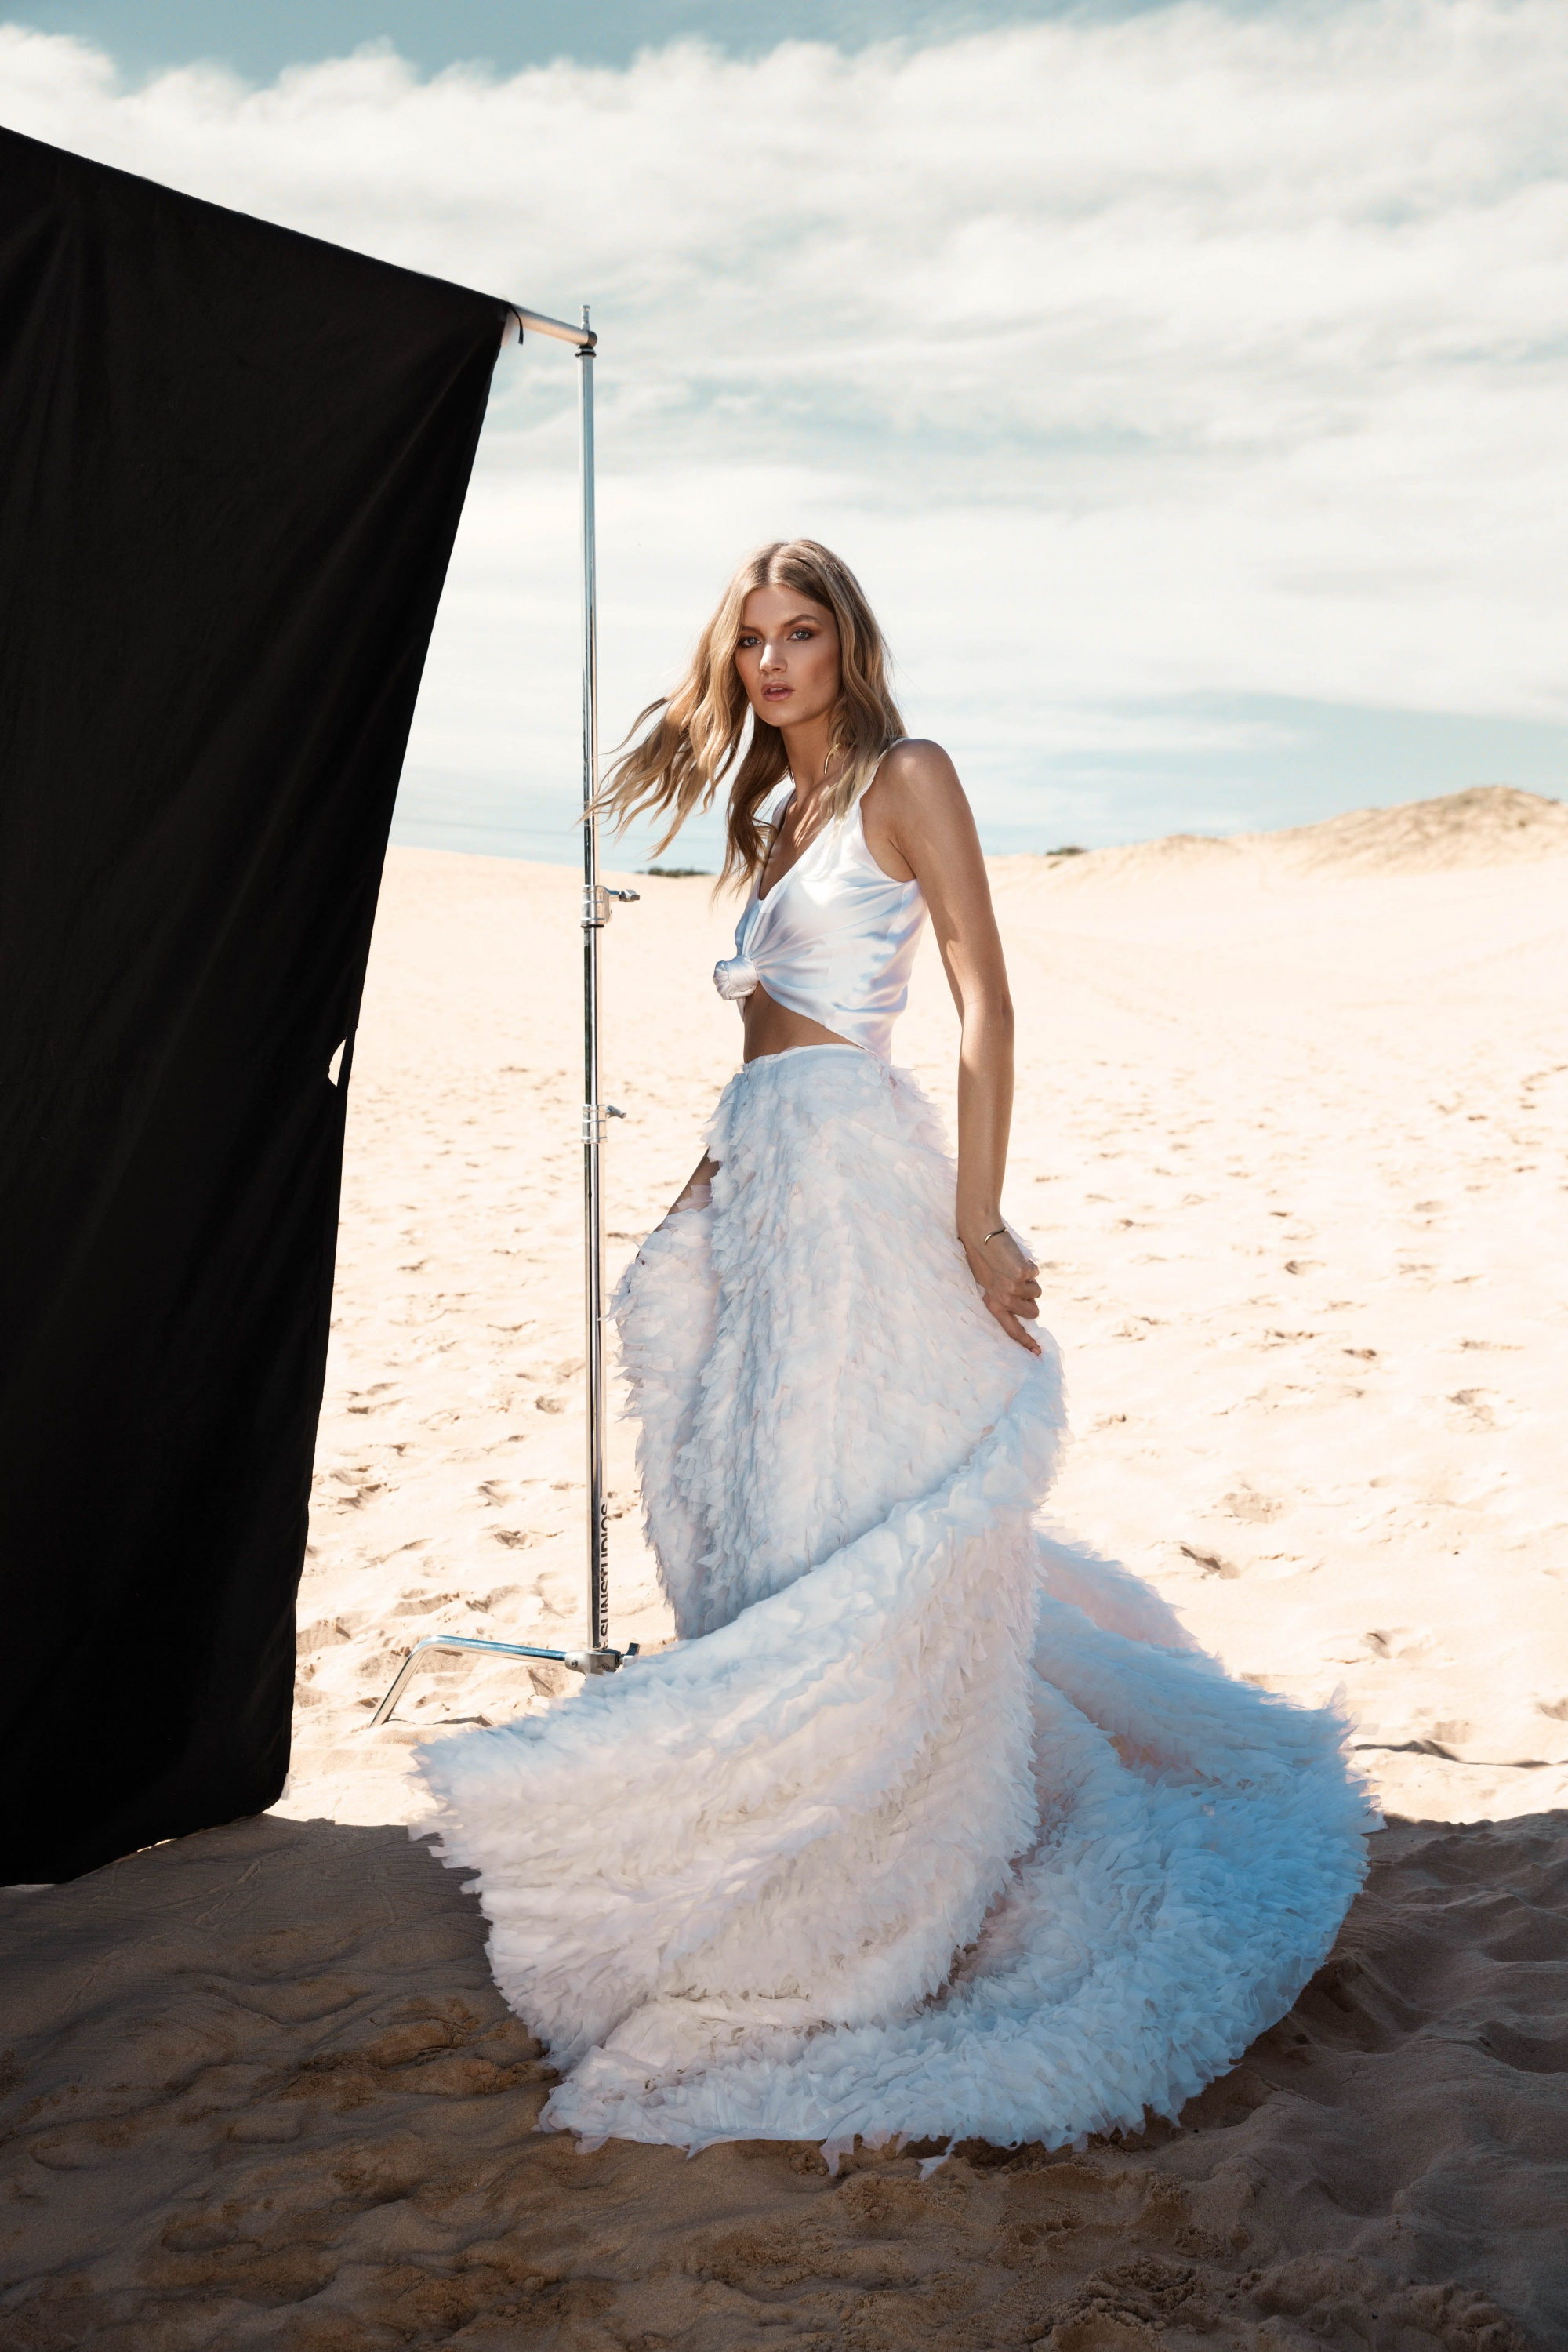 LOVE FIND CO. // ONE DAY BRIDAL 'Blessed Are The Curious' - Calli Top and Skirt